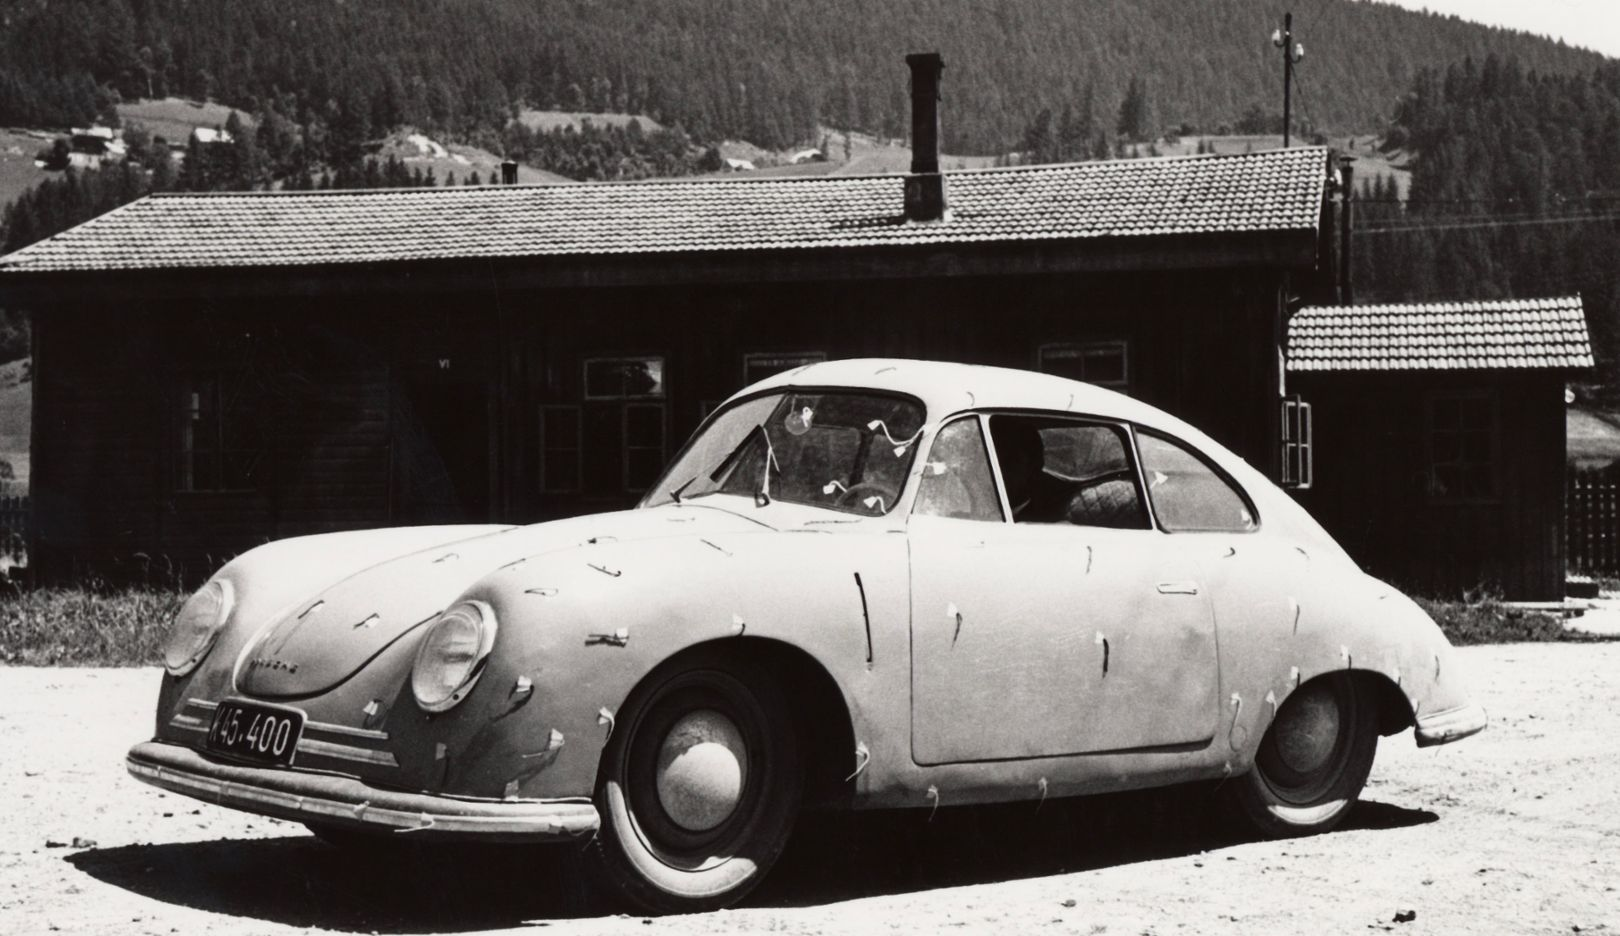 The Gmünd Porsche